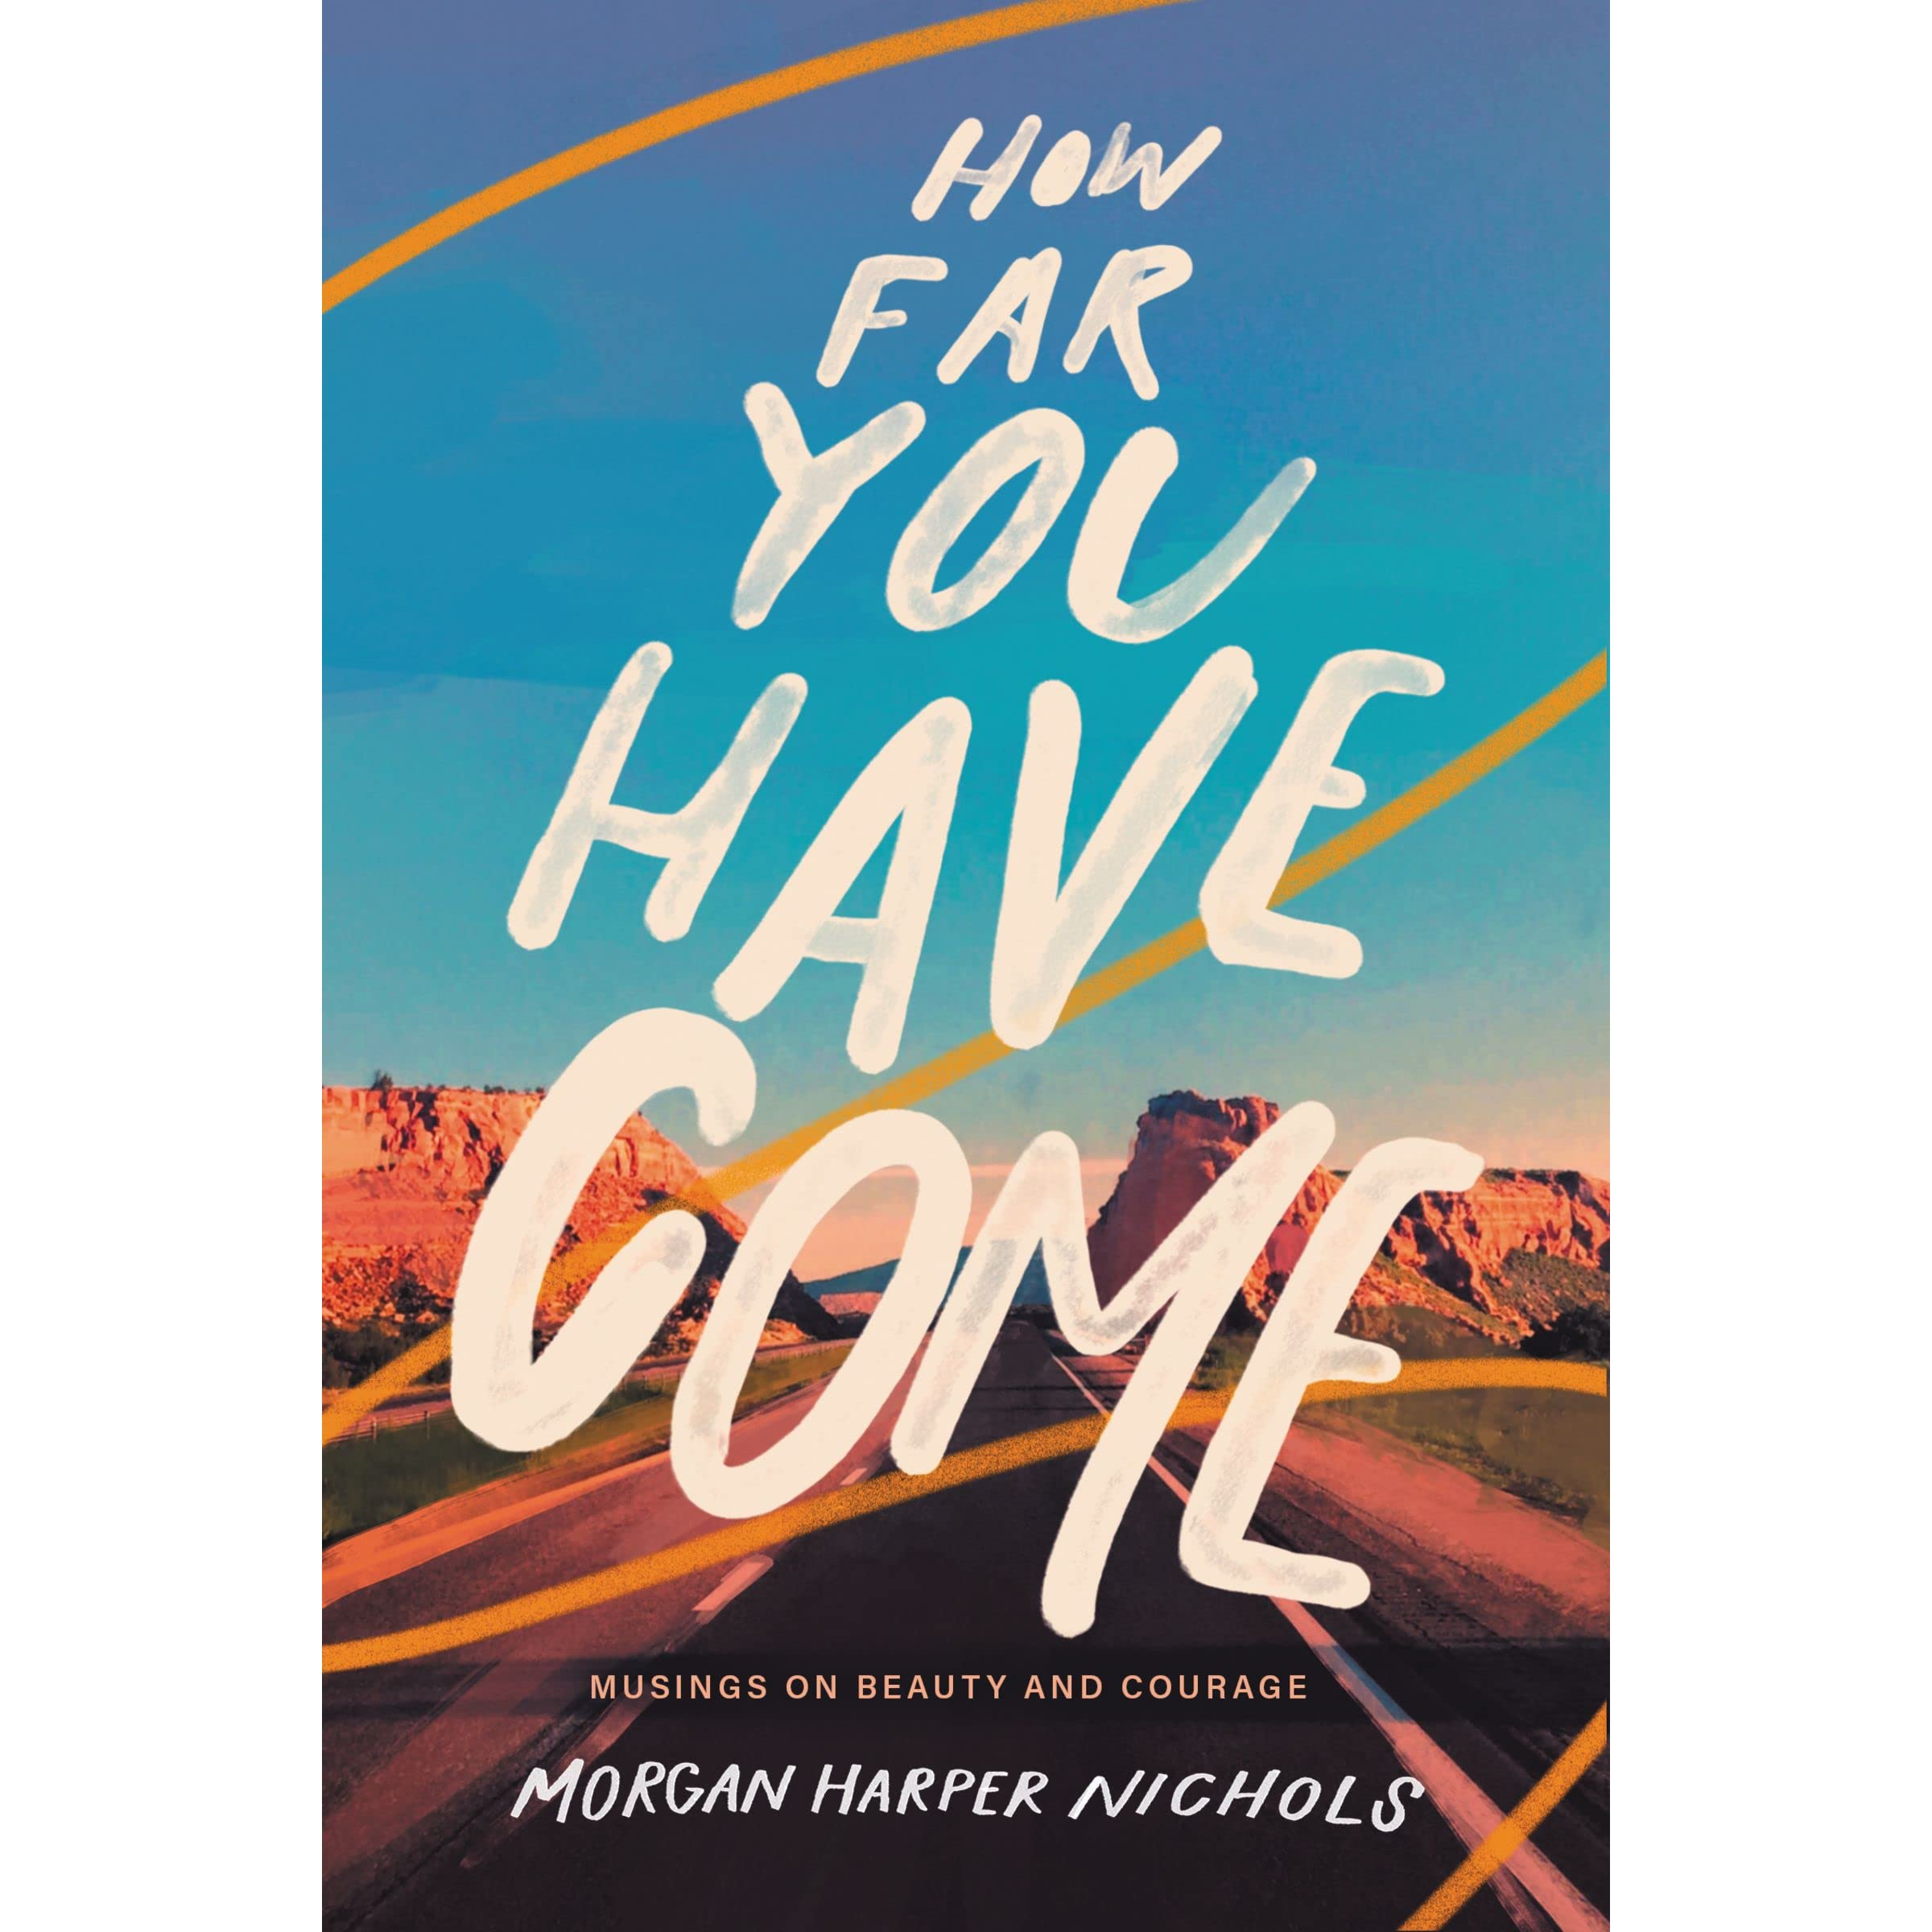 How Far You Have Come: Musings on Beauty and Courage by Morgan Harper  Nichols